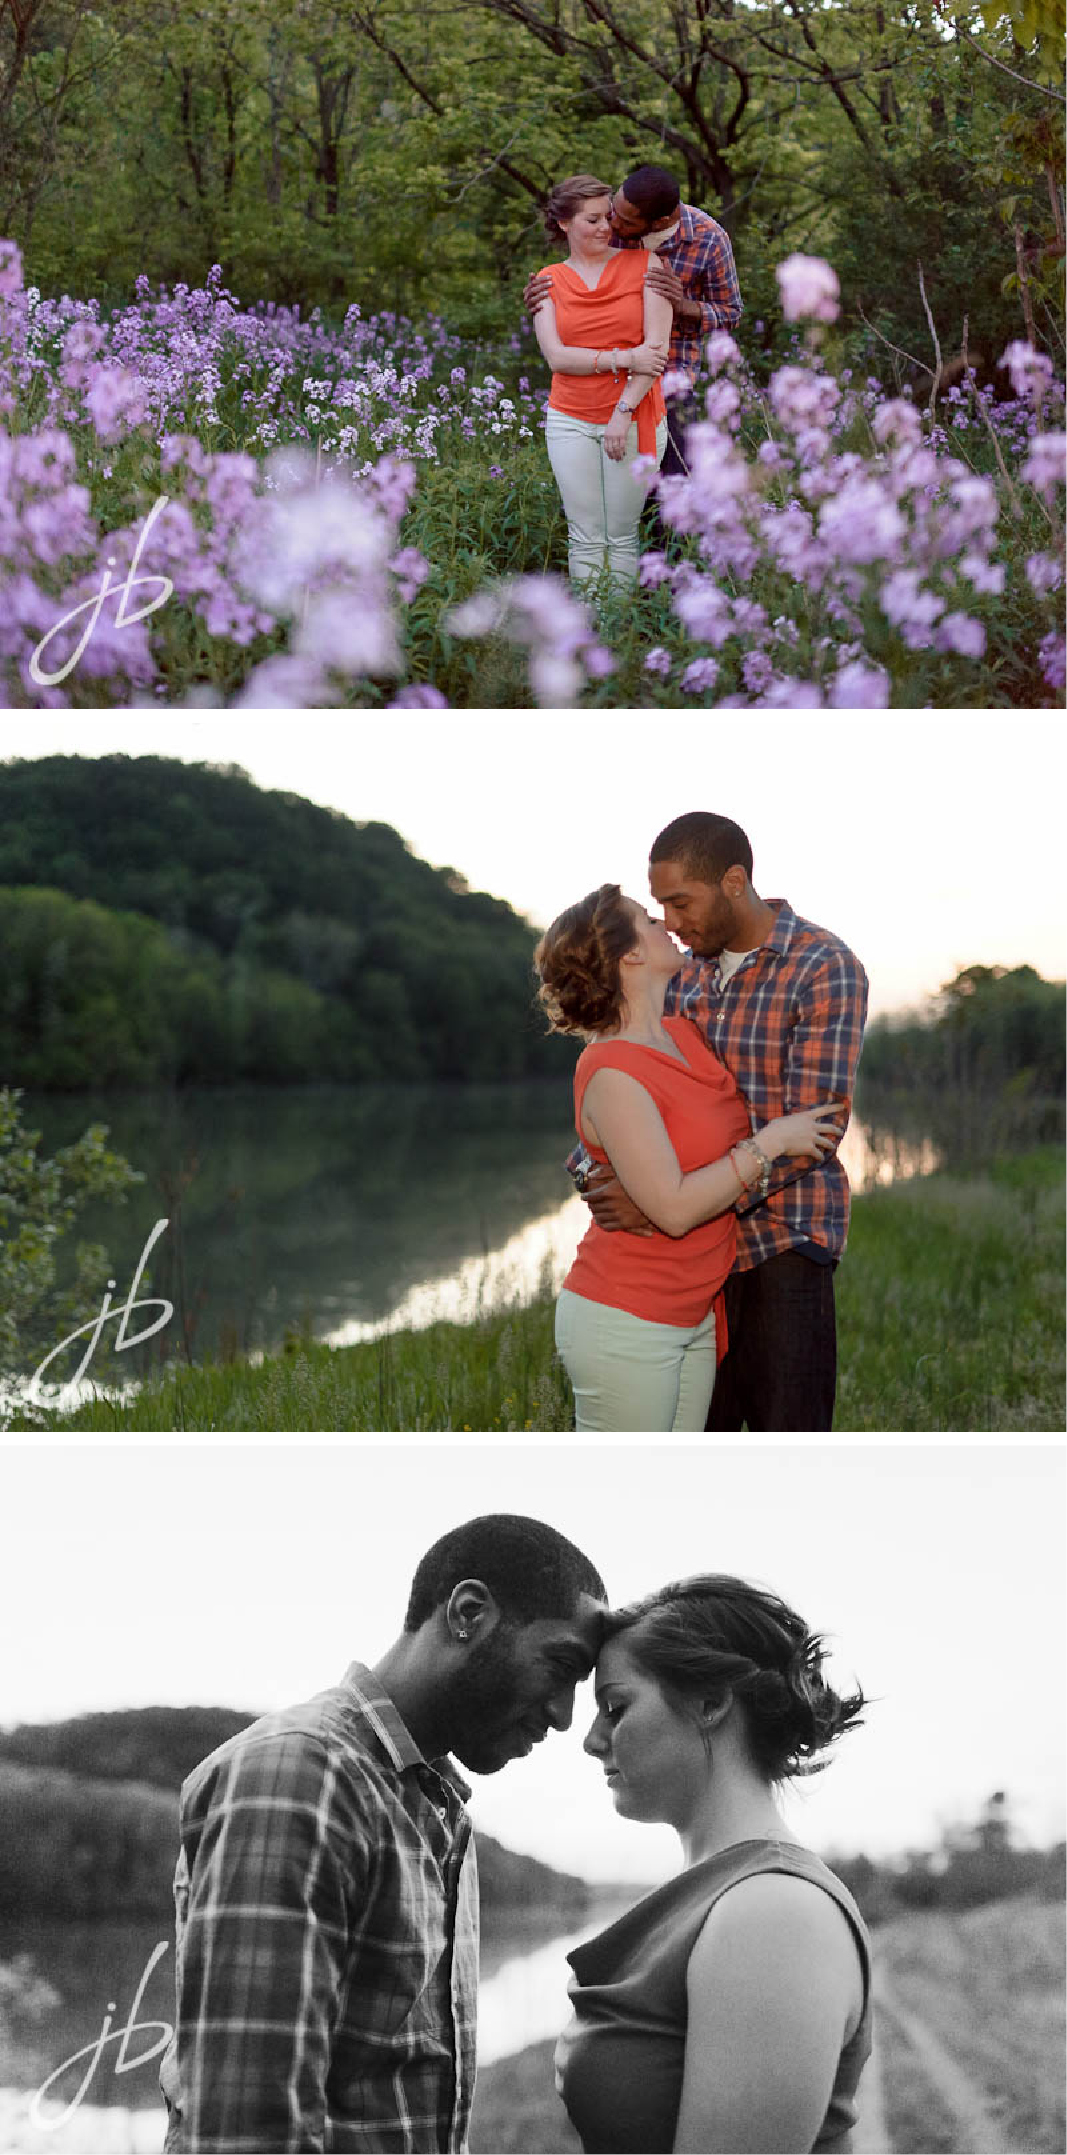 Reading, PA Wedding photograpy by Jeremy Bischoff Photography